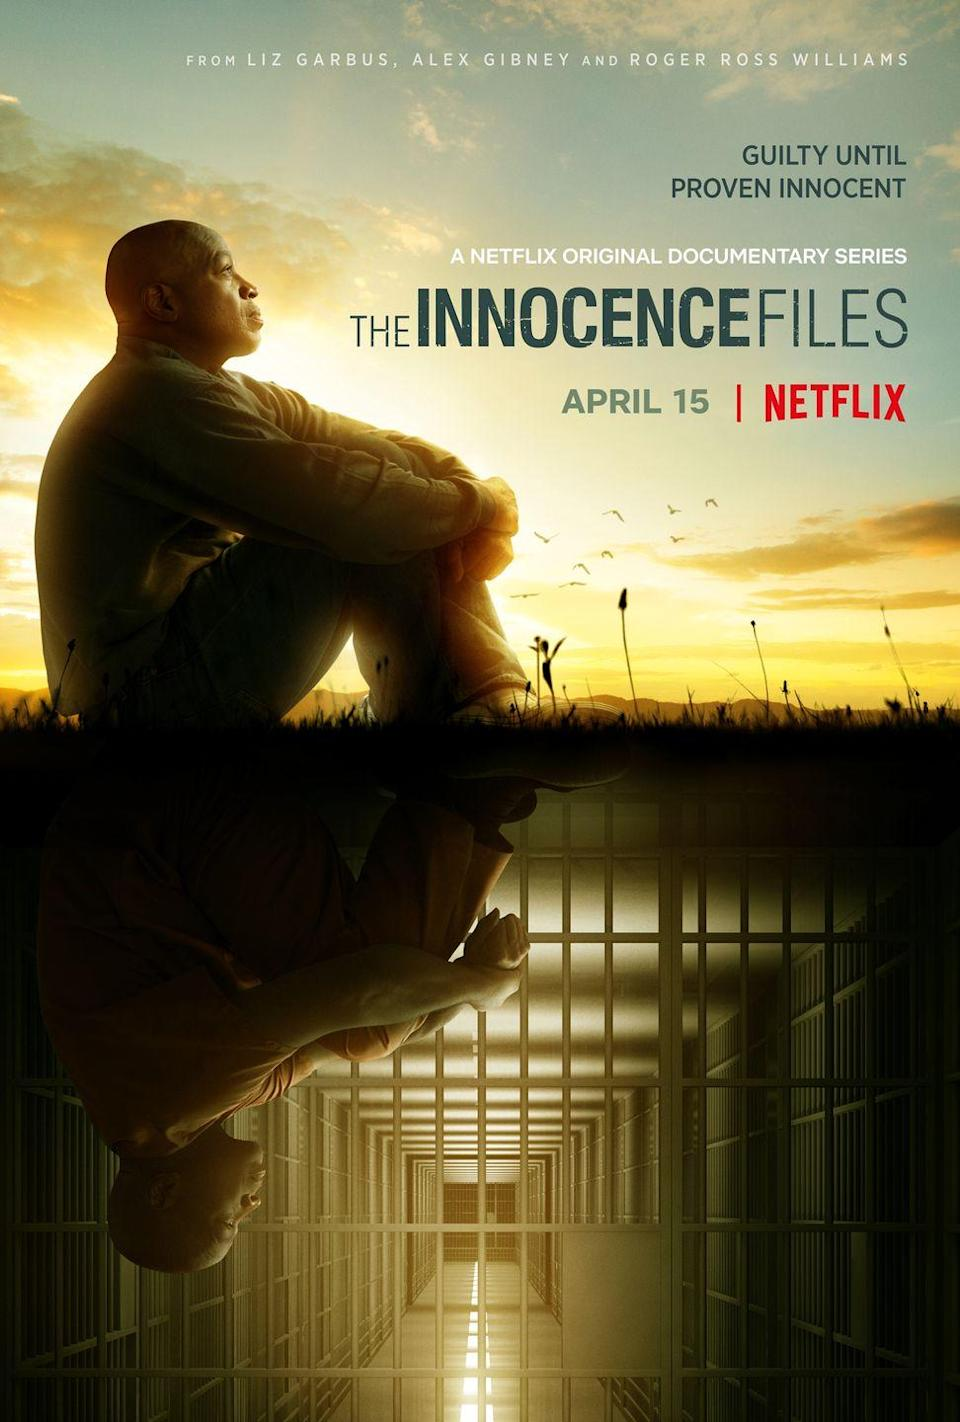 """<p>This <a href=""""https://www.womenshealthmag.com/life/a32098069/netflix-innocence-files-cast-now/"""" rel=""""nofollow noopener"""" target=""""_blank"""" data-ylk=""""slk:nine-part documentary series"""" class=""""link rapid-noclick-resp"""">nine-part documentary series</a> depicts multiple convictions that have been overturned thanks to the work done by the <a href=""""https://www.google.com/aclk?sa=l&ai=DChcSEwjRkOiht6zpAhVICIgJHQPnBmsYABAAGgJxbg&sig=AOD64_3ZRItvb4F-STDbqhYYnkLVr7hGuw&q=&ved=2ahUKEwiIj-Cht6zpAhUJmuAKHXvRAXYQ0Qx6BAgoEAE&adurl="""" rel=""""nofollow noopener"""" target=""""_blank"""" data-ylk=""""slk:Innocence Project"""" class=""""link rapid-noclick-resp"""">Innocence Project</a> (the same organization that freed the five innocent men known as the <a href=""""https://www.womenshealthmag.com/life/a27394351/central-park-five-true-story/"""" rel=""""nofollow noopener"""" target=""""_blank"""" data-ylk=""""slk:Central Park Five"""" class=""""link rapid-noclick-resp"""">Central Park Five</a>, whose stories were told in the documentary of the same name and dramatized in Ava DuVernay's <em><a href=""""https://www.womenshealthmag.com/life/a27679359/central-park-five-prison-how-long-netflix-when-they-see-us/"""" rel=""""nofollow noopener"""" target=""""_blank"""" data-ylk=""""slk:When They See Us"""" class=""""link rapid-noclick-resp"""">When They See Us</a></em>)<em>. </em></p><p>The Innocence Project uses DNA evidence to reinvestigate crimes and shed light on how this country's criminal justice system is, in many ways, flawed.</p><p><a class=""""link rapid-noclick-resp"""" href=""""https://www.netflix.com/title/80214563"""" rel=""""nofollow noopener"""" target=""""_blank"""" data-ylk=""""slk:Watch Now"""">Watch Now</a></p>"""